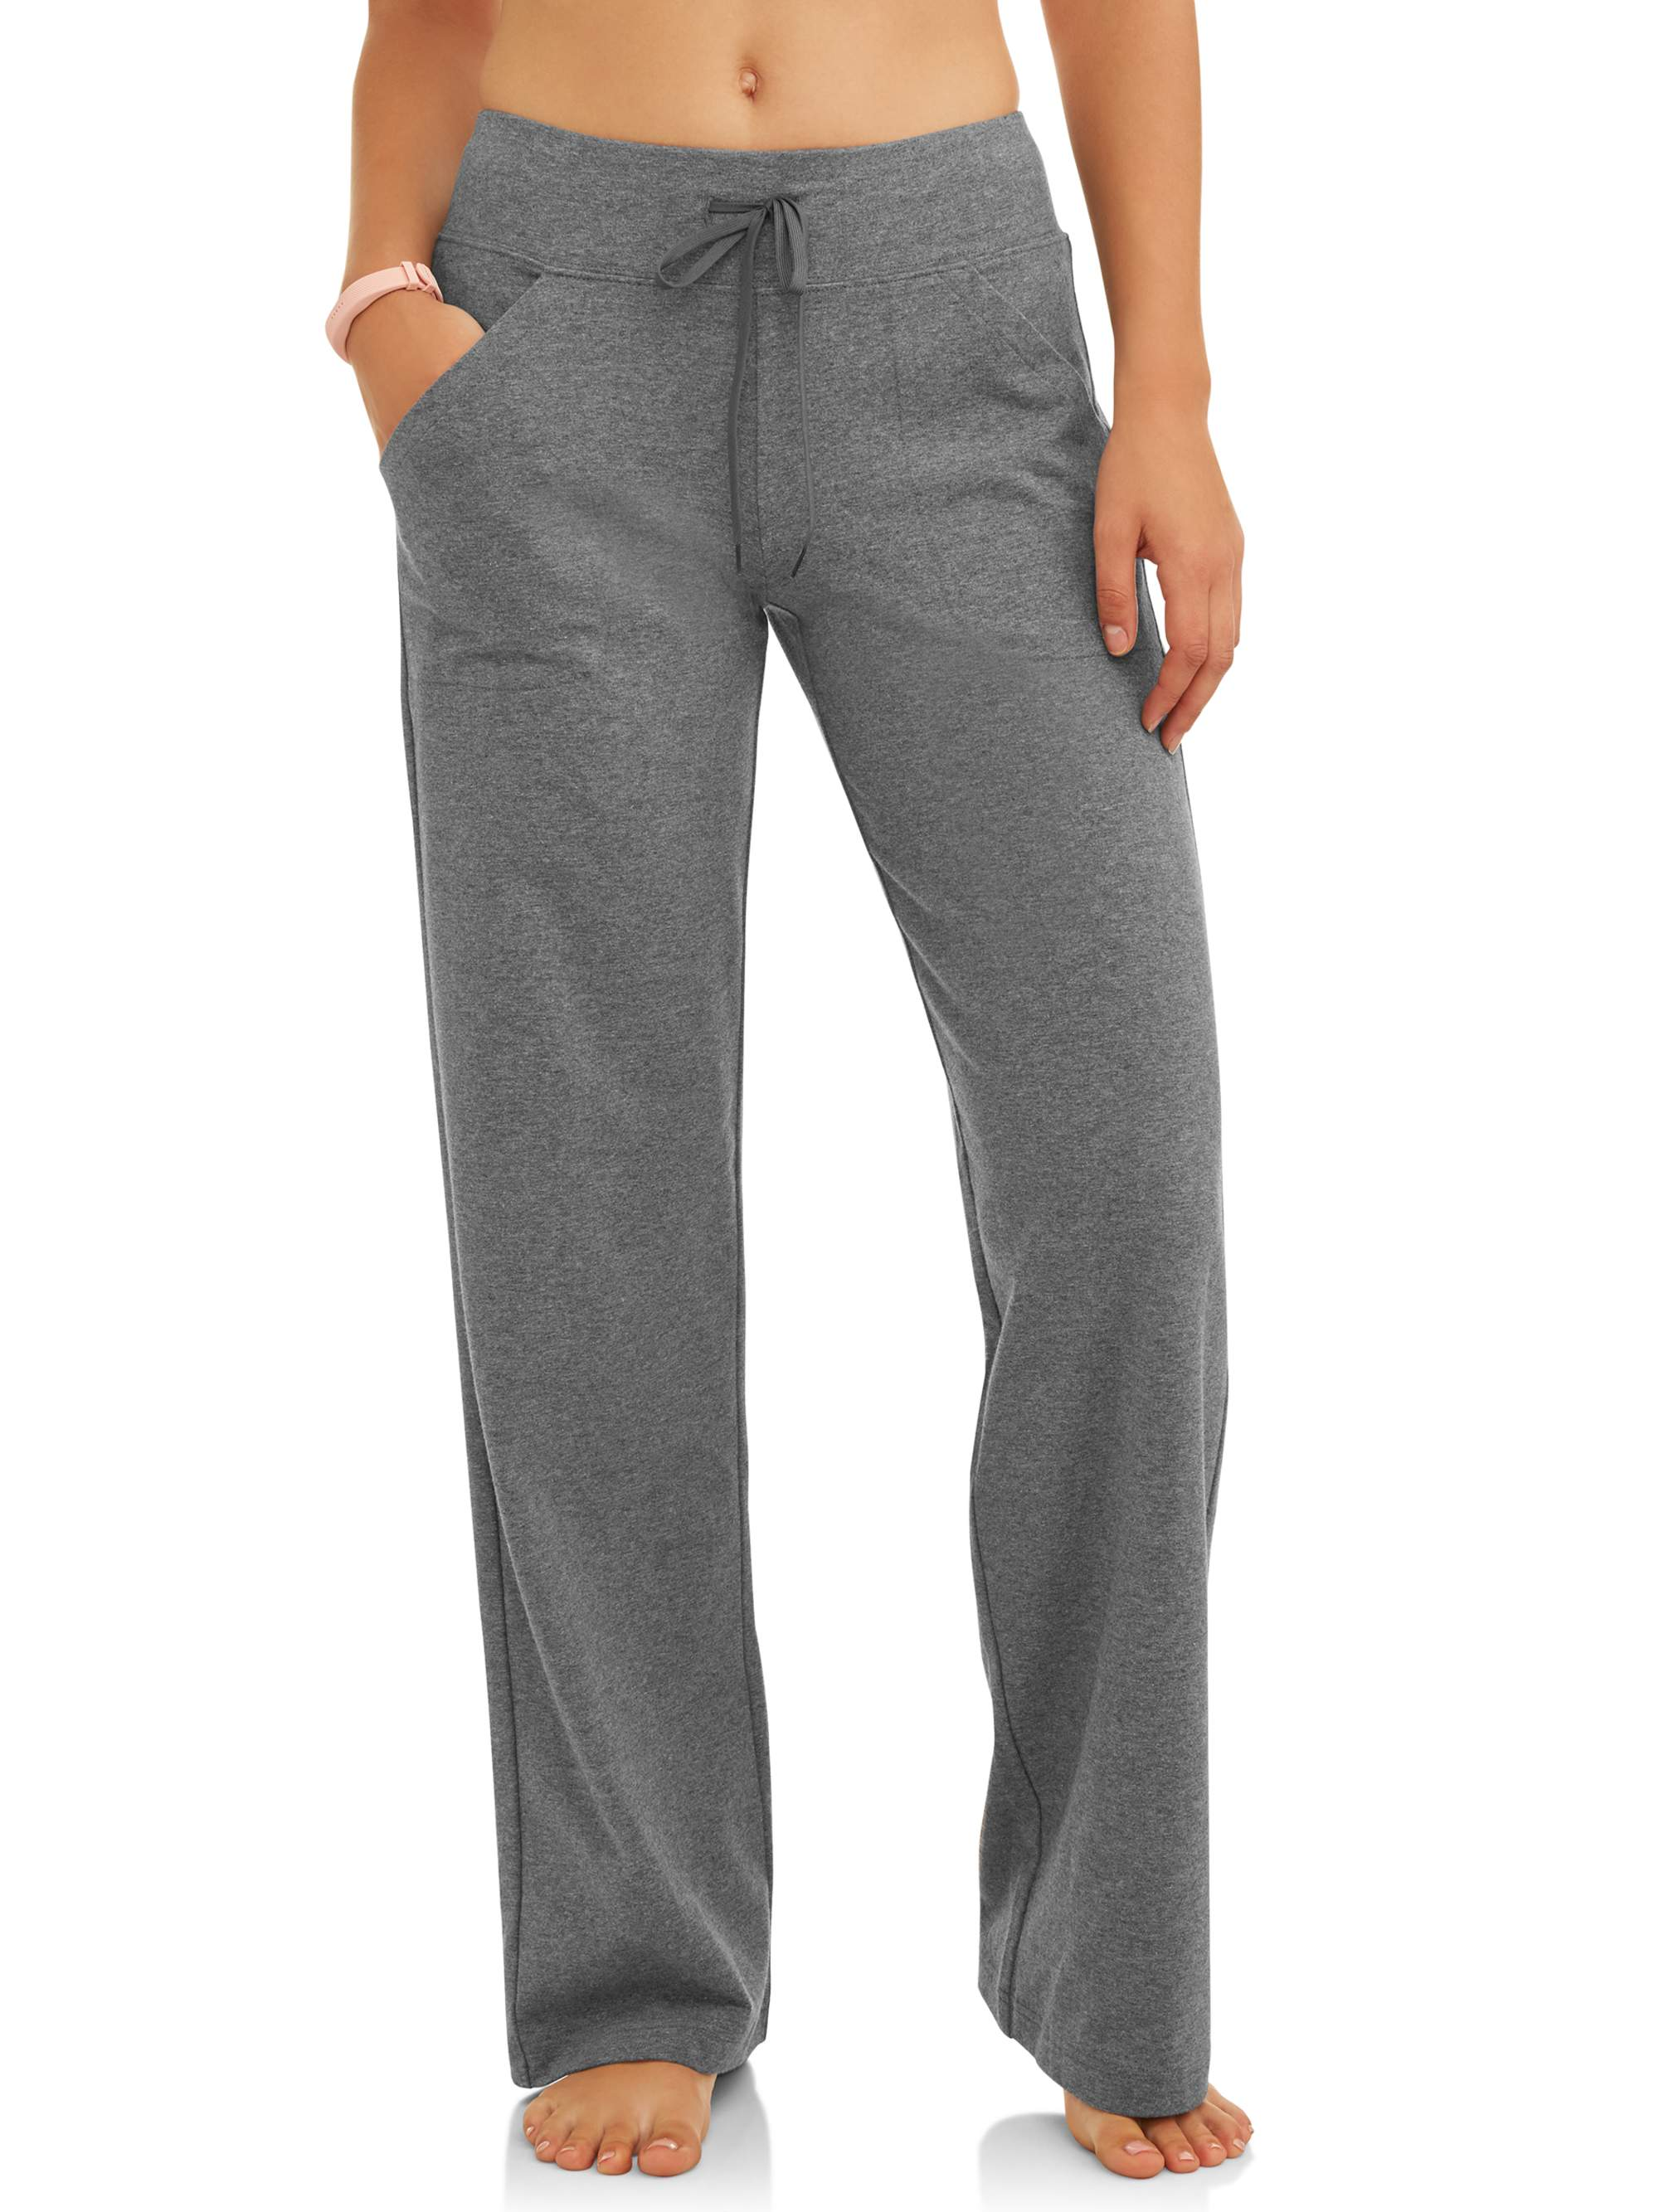 Women's Dri More Core Relaxed Fit Yoga Pant Available in Regular and Petite